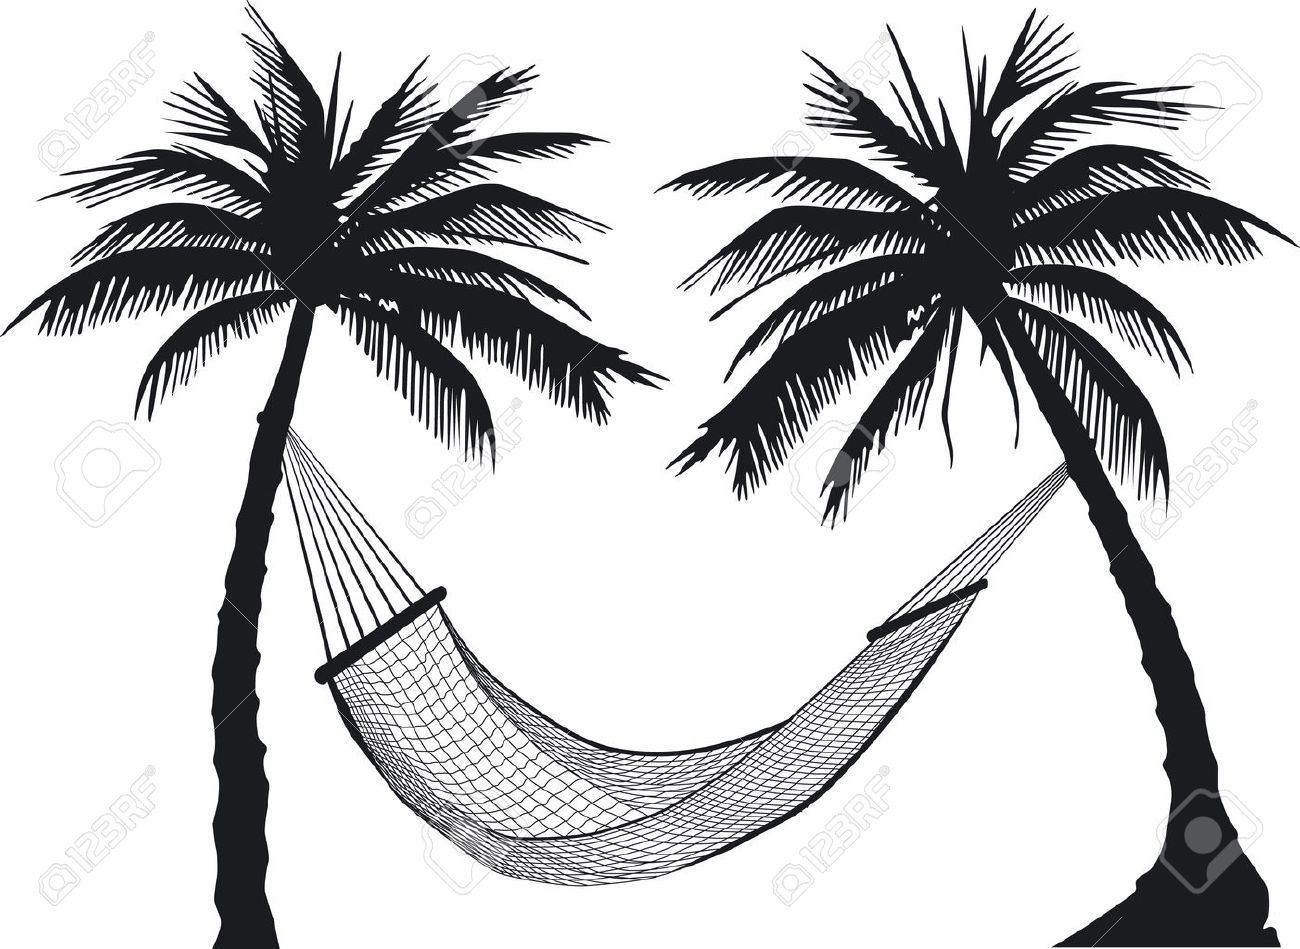 Hammock clipart black and white 10 » Clipart Station.